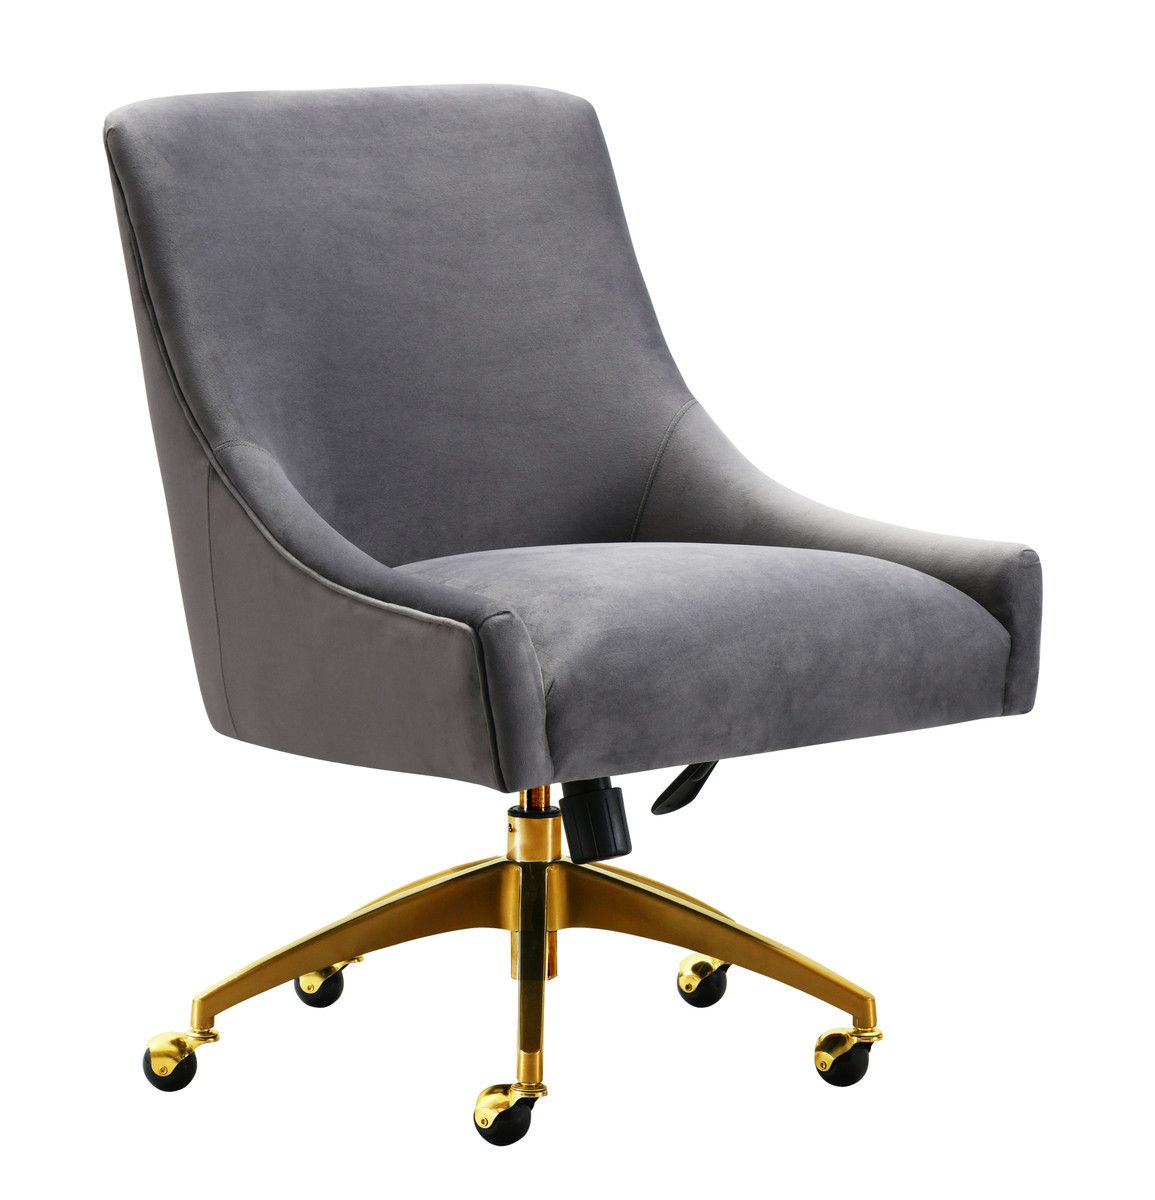 Beatrix Grey Office Swivel Chair Swivel Office Chair Modern Office Chair Office Chair